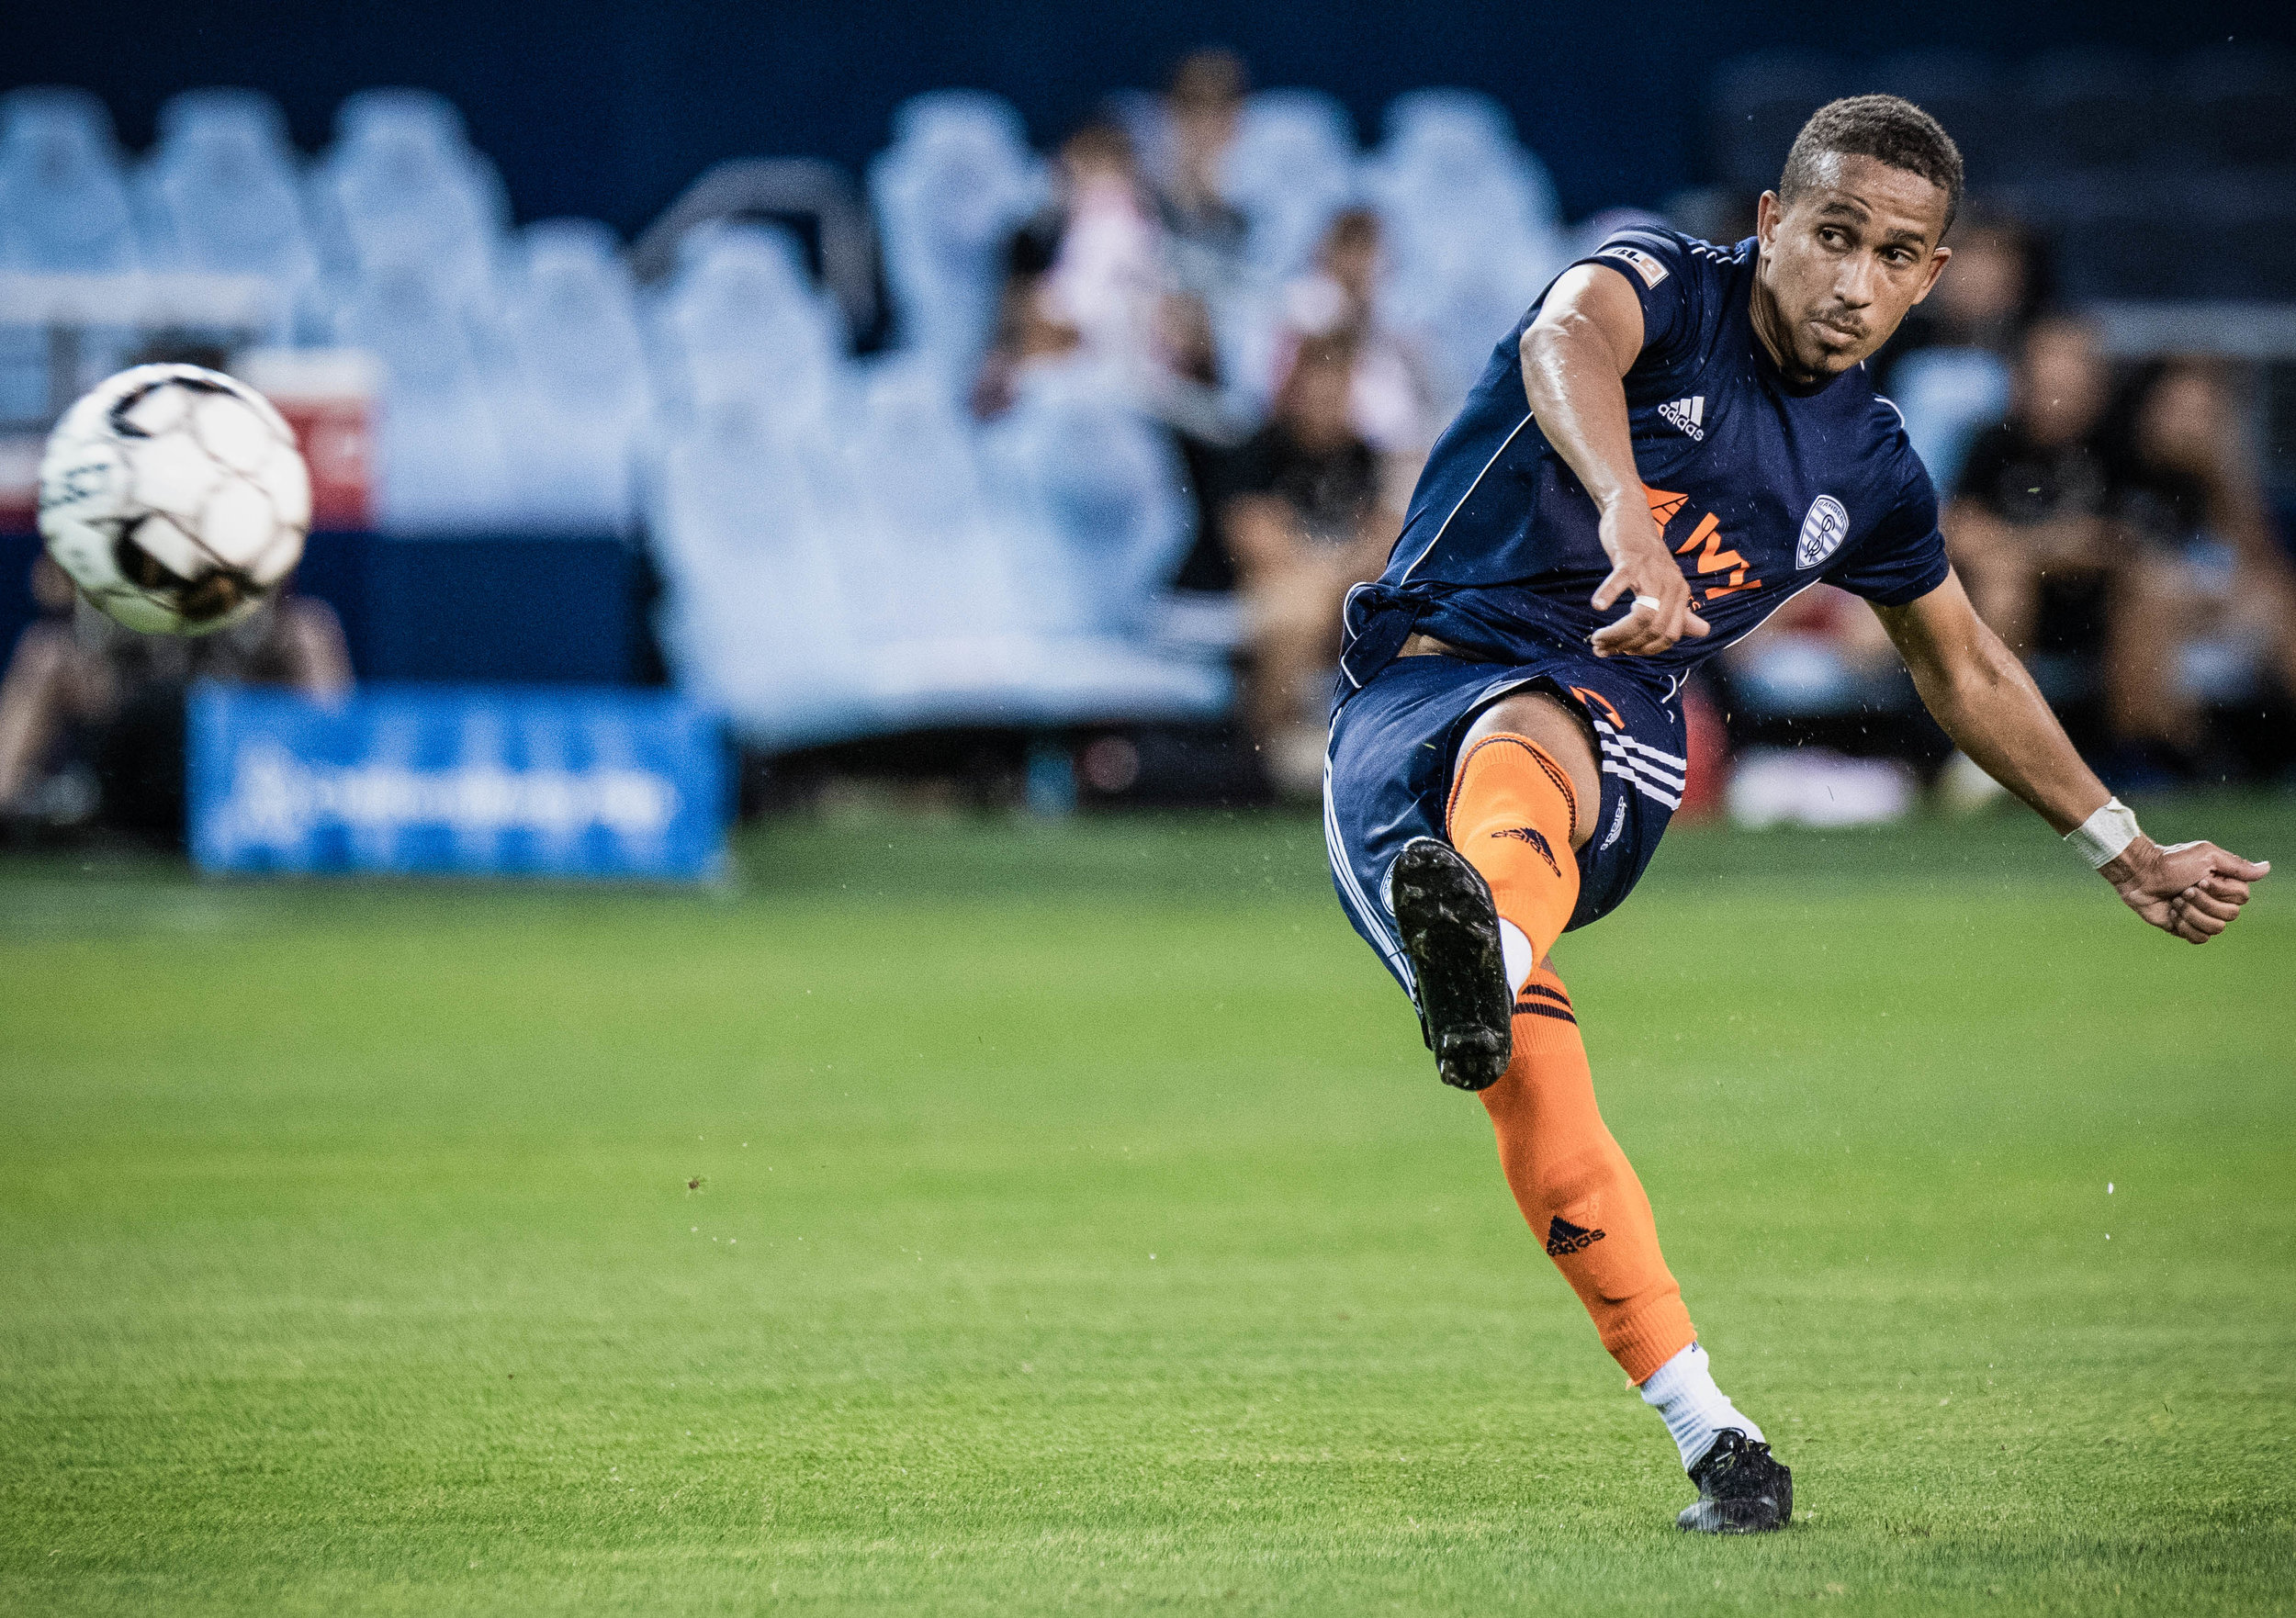 Defender/midfielder, Alexsander (92) takes a free kick during the Swope Park Rangers vs. Loudoun United FC match on Wednesday, June 5, 2019 at Children's Mercy Park, Kansas City, Kansas. | Photo by: Noah Riffe